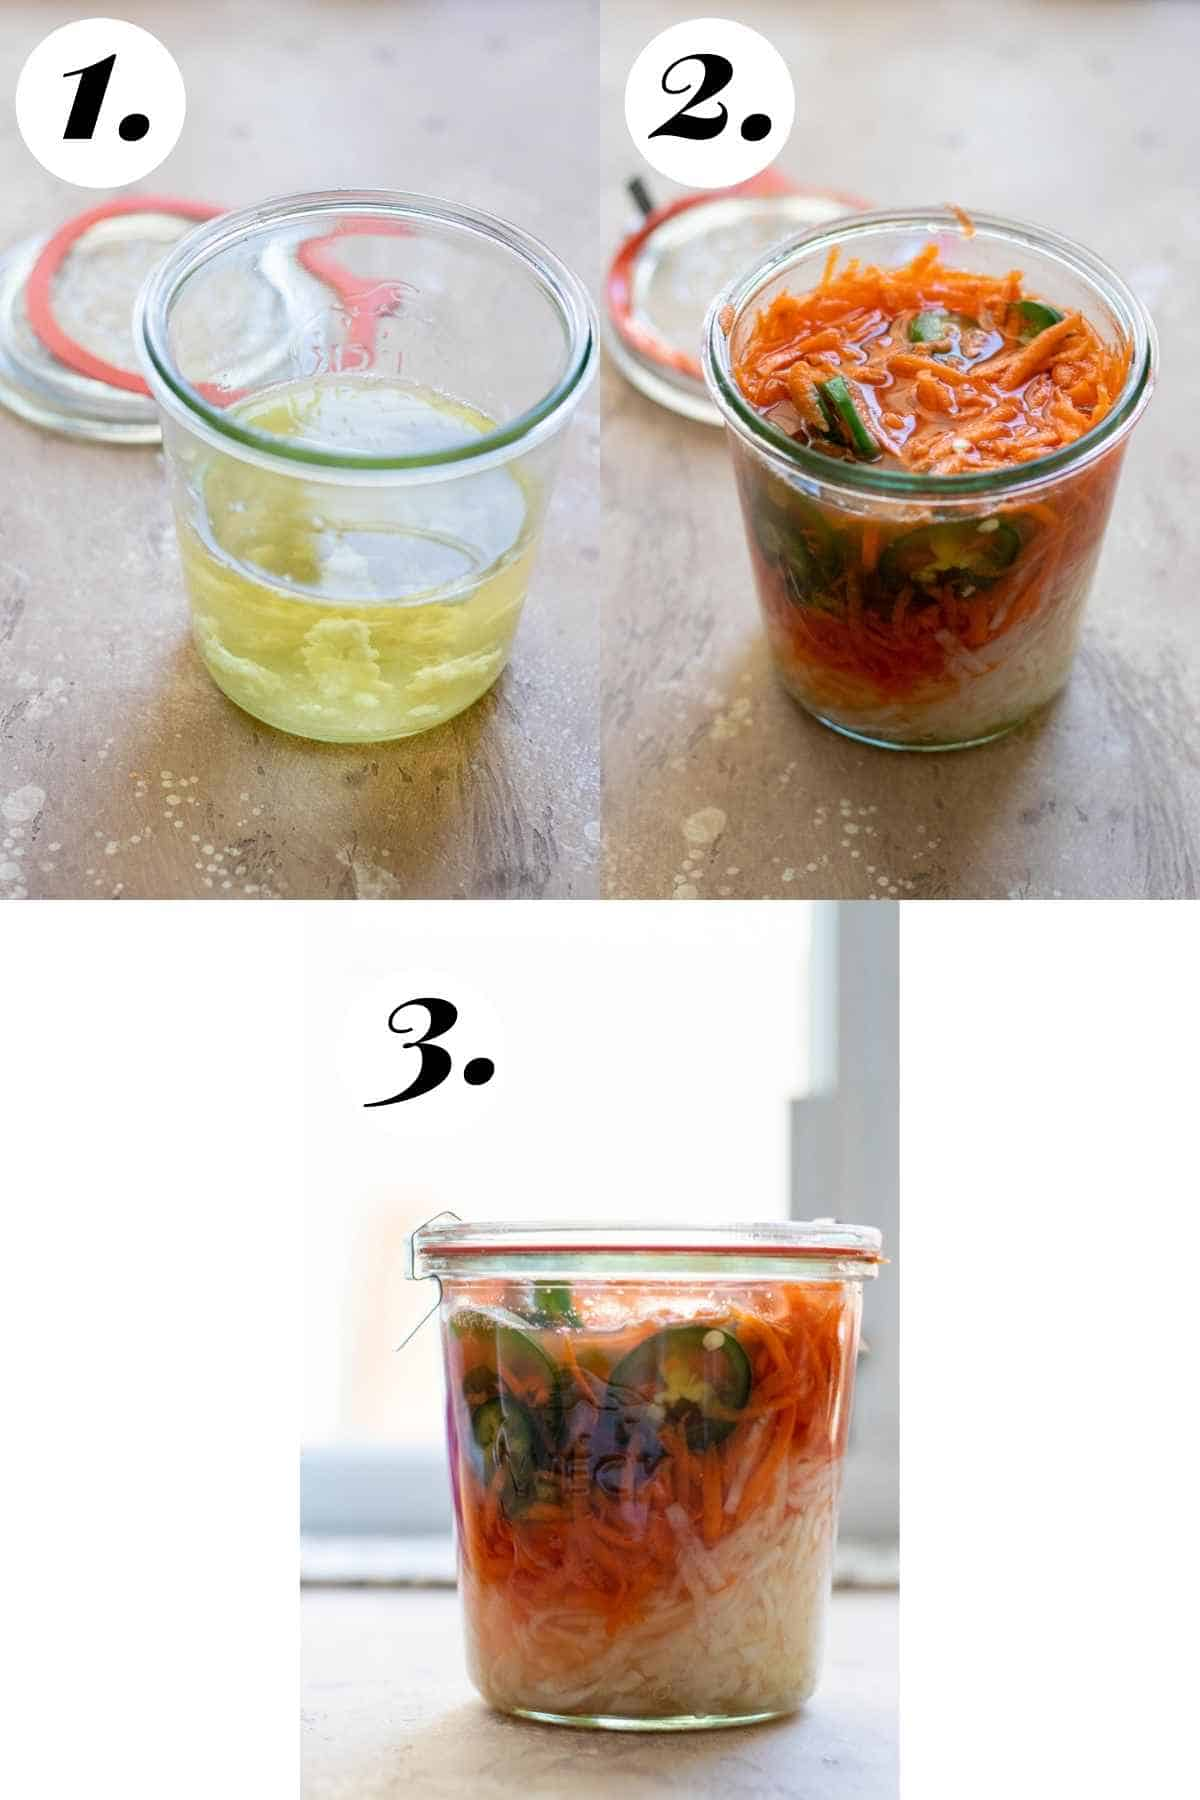 Step by step process of pickling the vegetables.